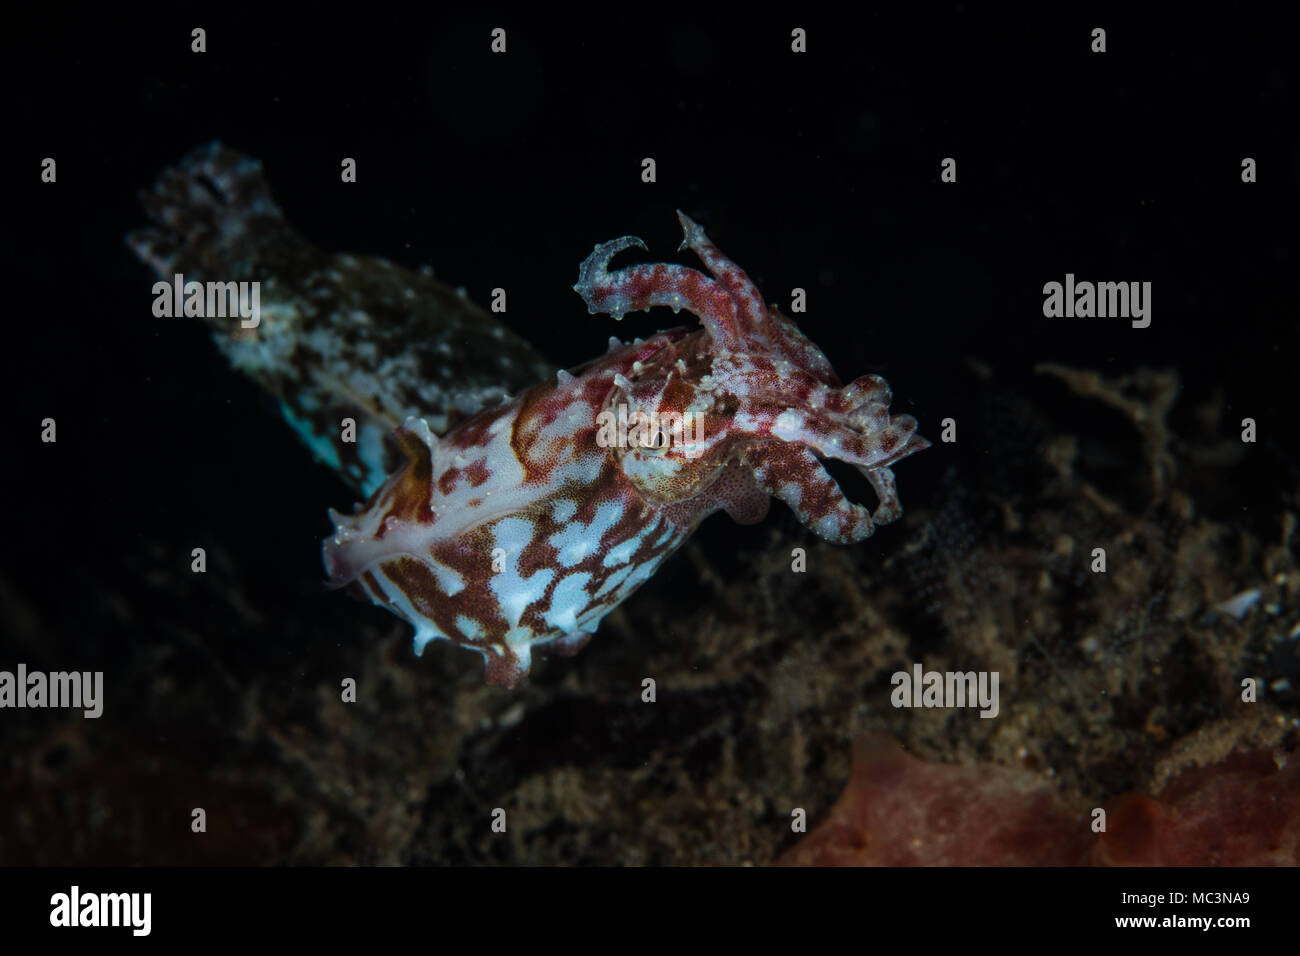 A pair of Crinoid cuttlefish, Sepia sp., hover above the dark seafloor in Lembeh Strait, Indonesia. - Stock Image